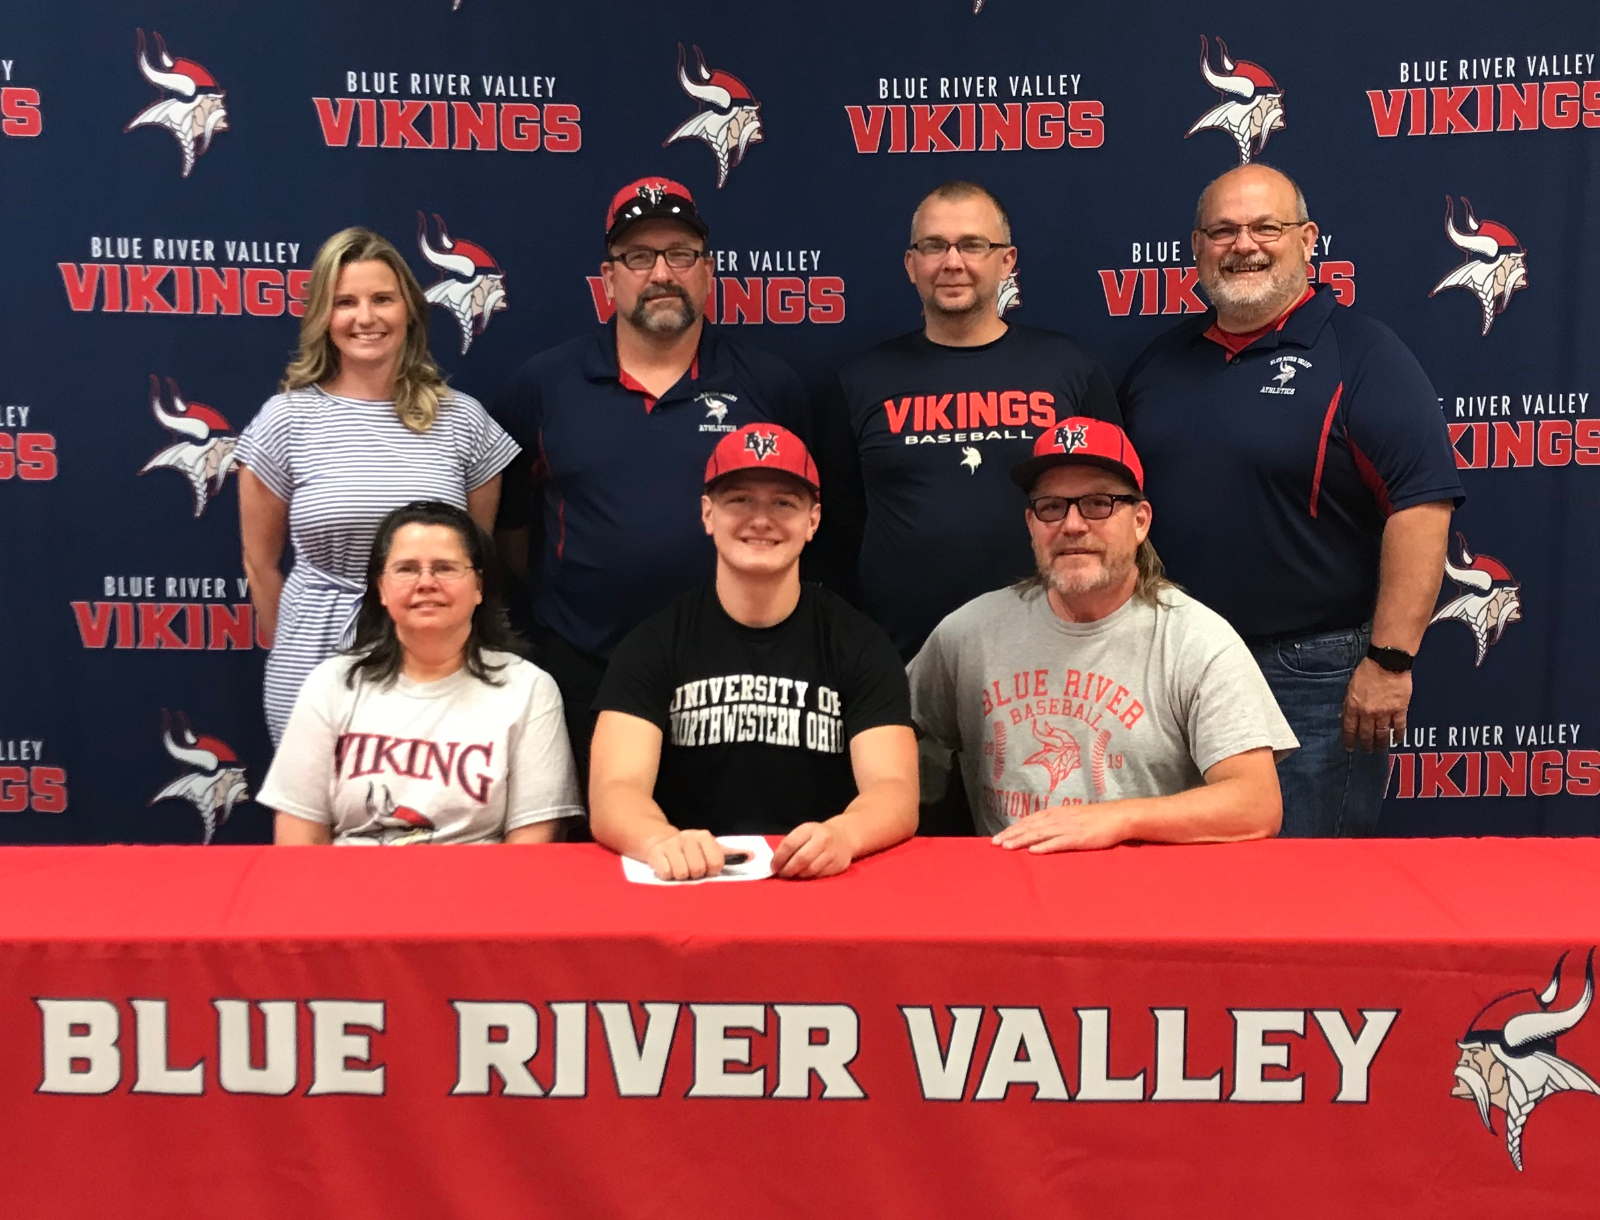 HAMM SIGNS TO PLAY FOR RACERS